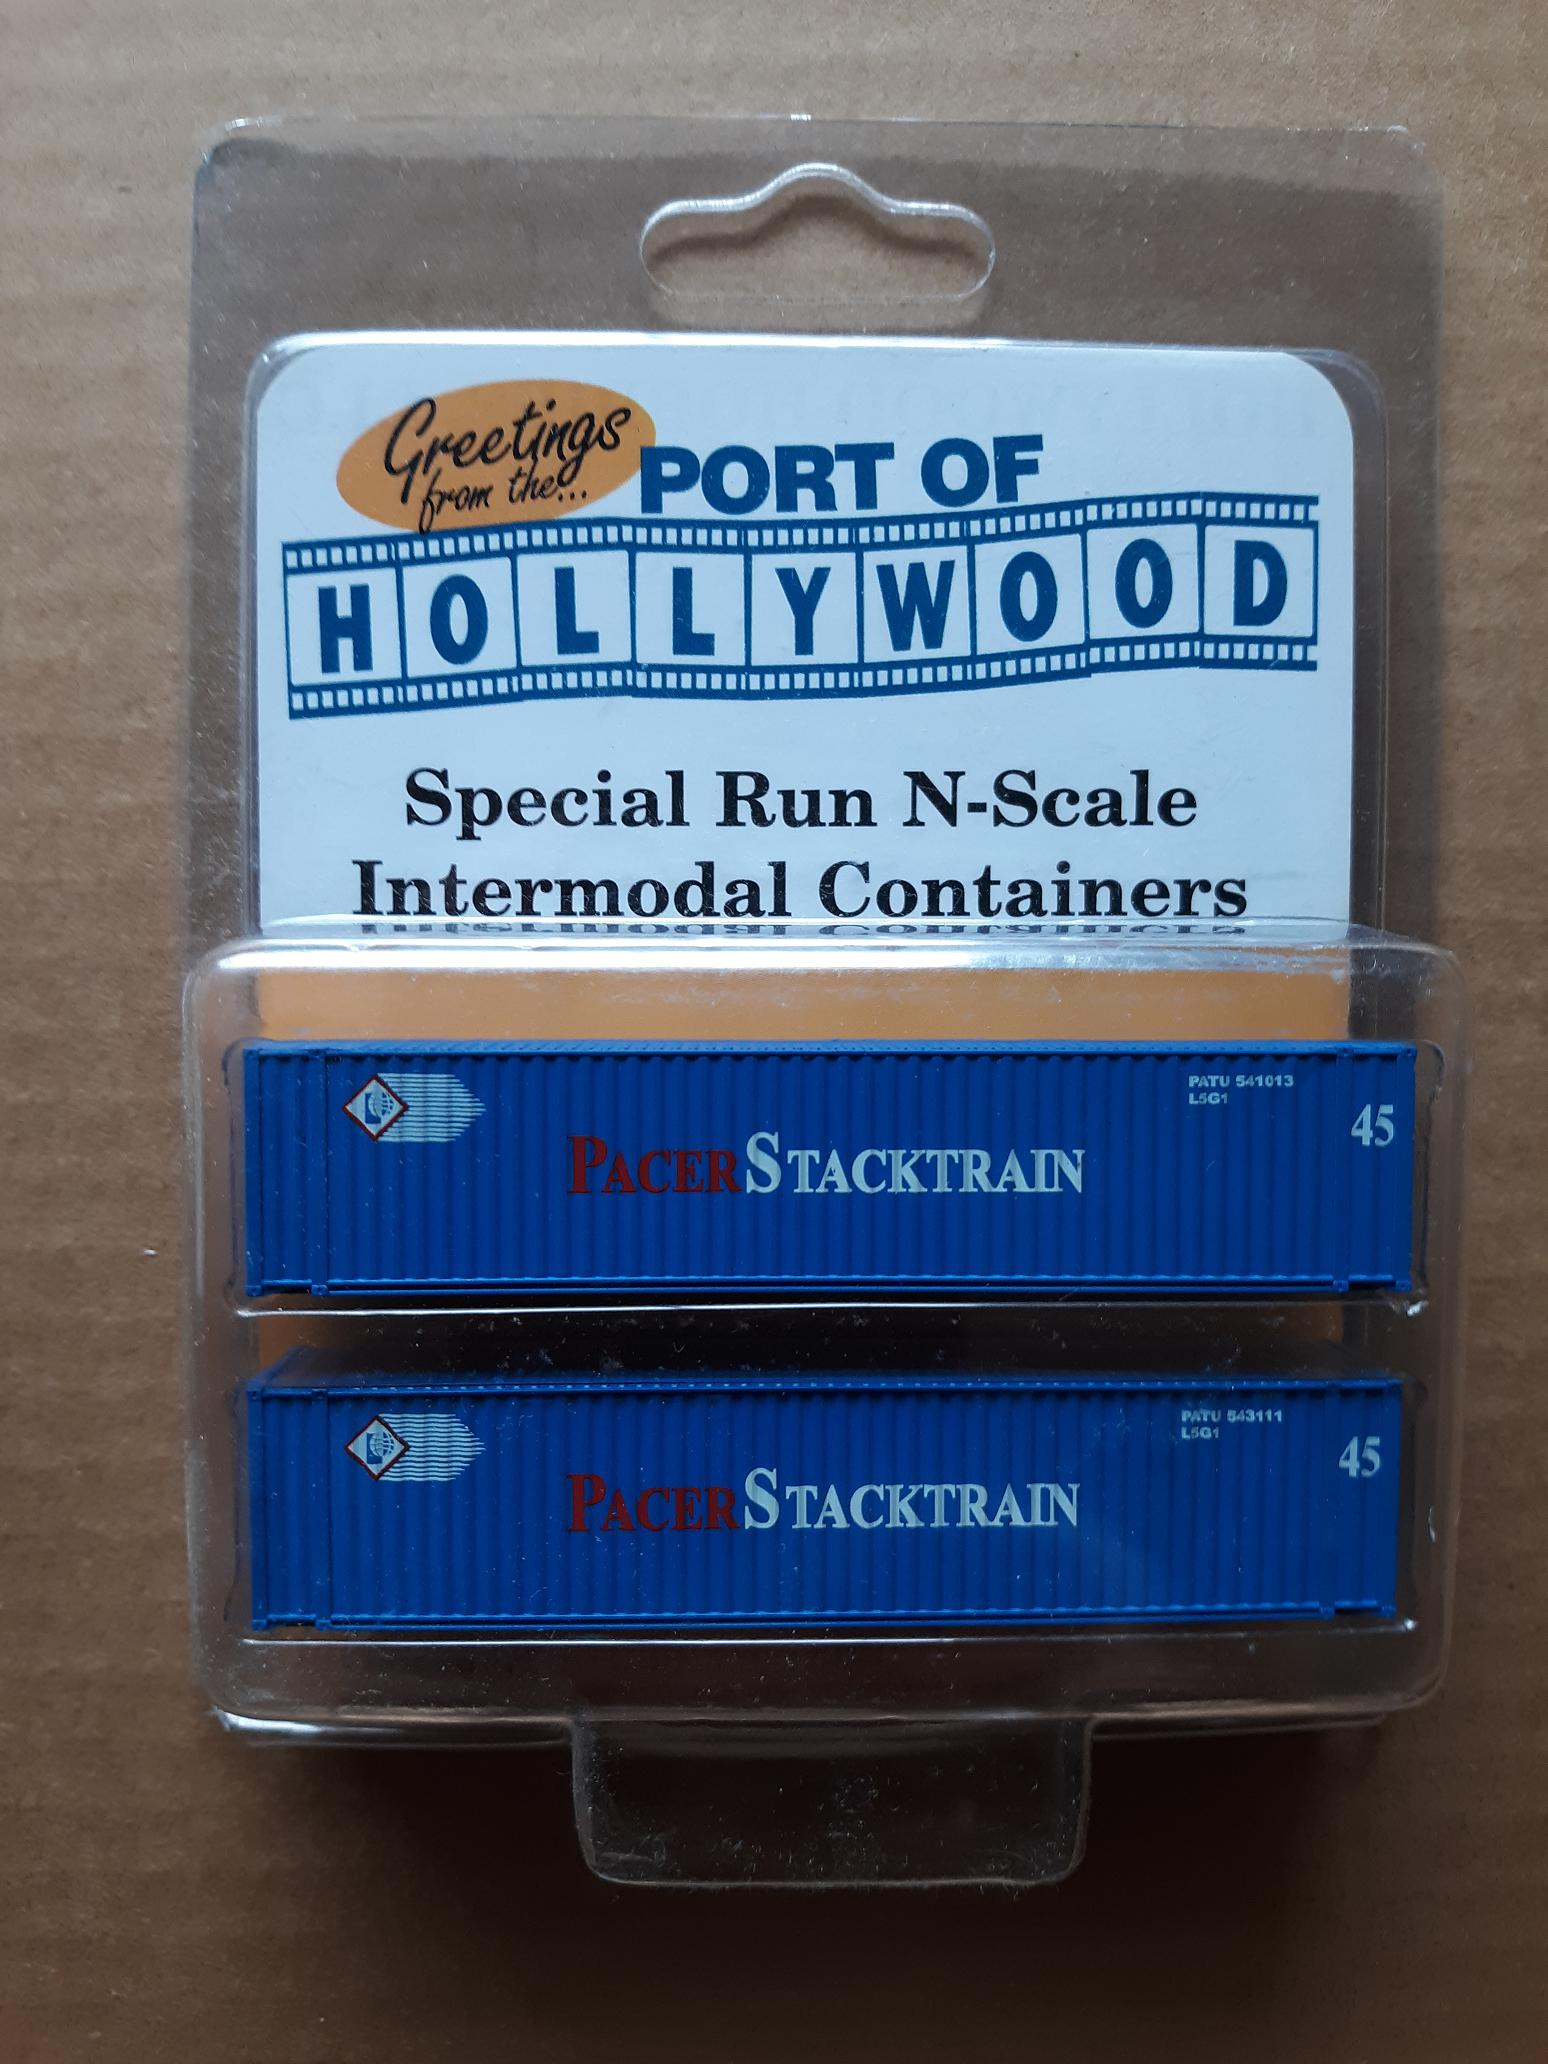 N Scale - Port of Hollywood - Pacer Stacktrain - Container, 45 Foot - Pacer StackTrain - 541013, 543111